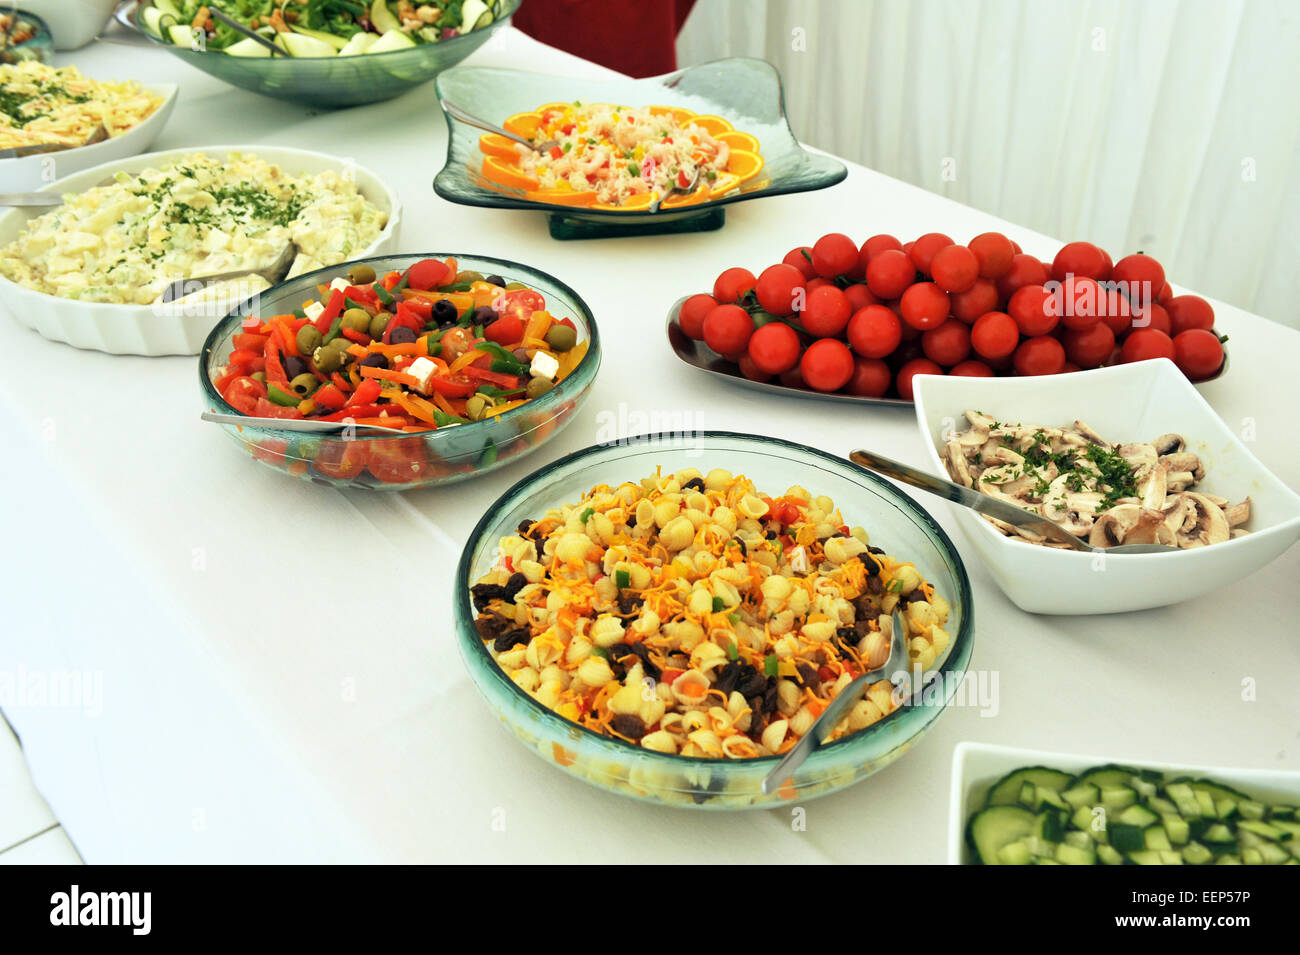 salad buffet at a wedding party stock photo 77933738 alamy rh alamy com salad buffet party summer salad buffet ideas